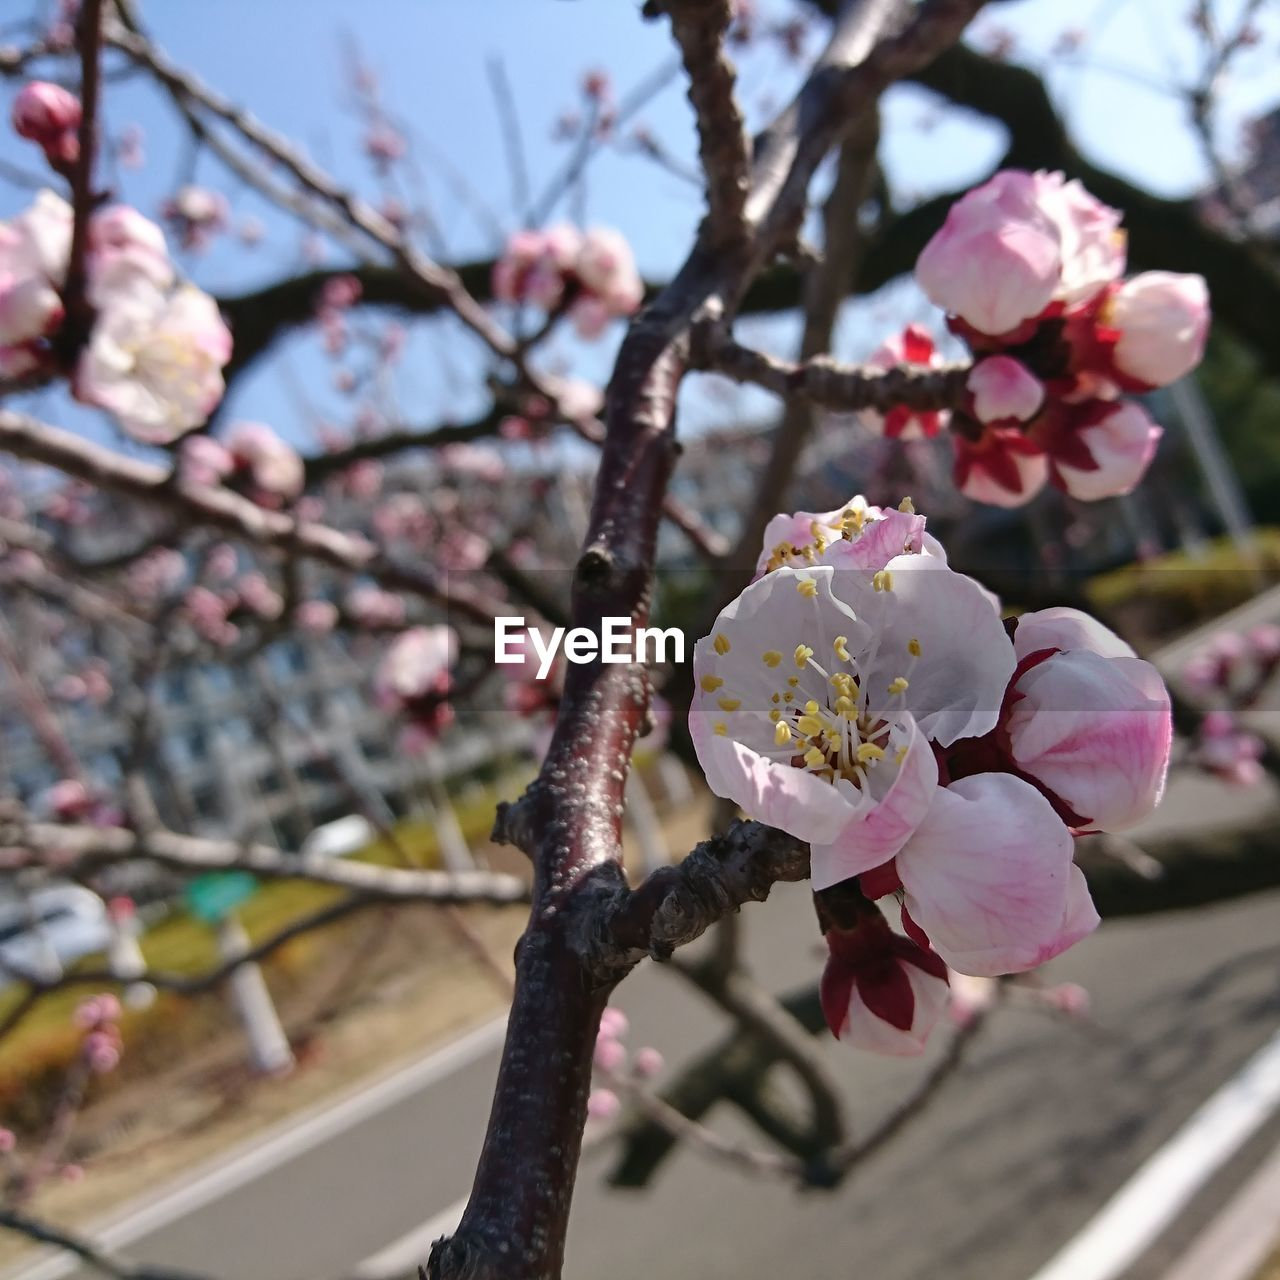 flowering plant, flower, plant, beauty in nature, freshness, fragility, vulnerability, growth, springtime, petal, blossom, tree, branch, pink color, focus on foreground, cherry blossom, close-up, inflorescence, nature, flower head, pollen, cherry tree, no people, outdoors, plum blossom, spring